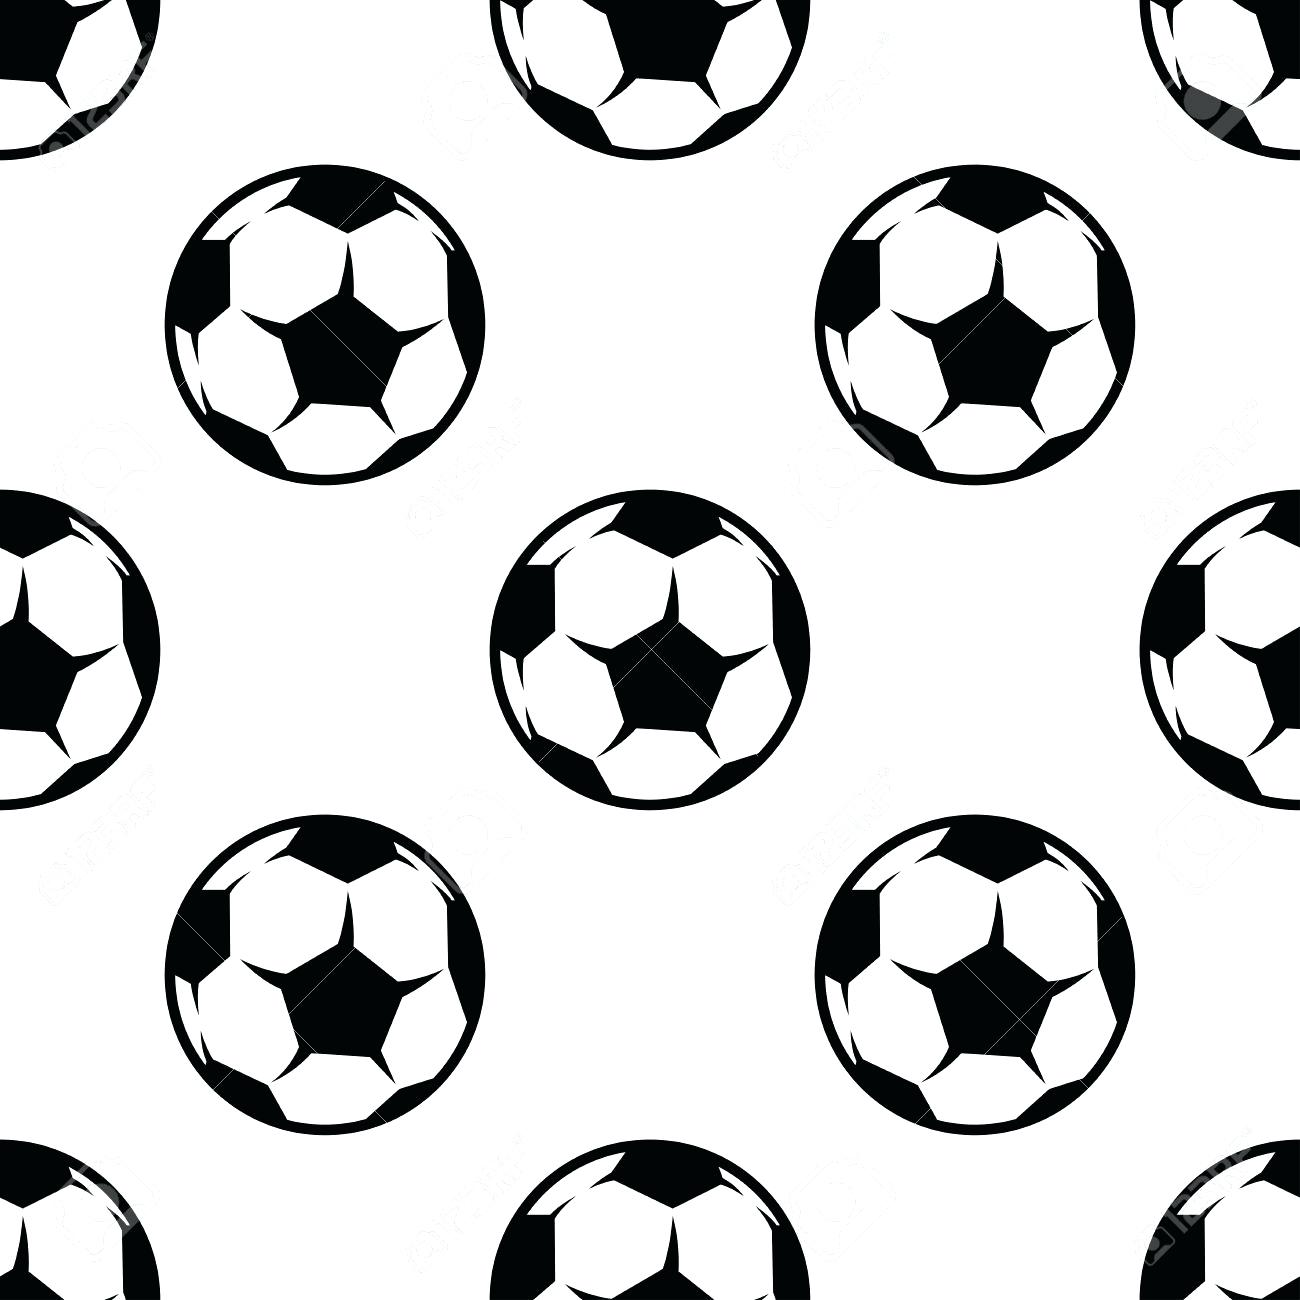 1300x1300 Football Wallpaper Borders Black And White Google Search